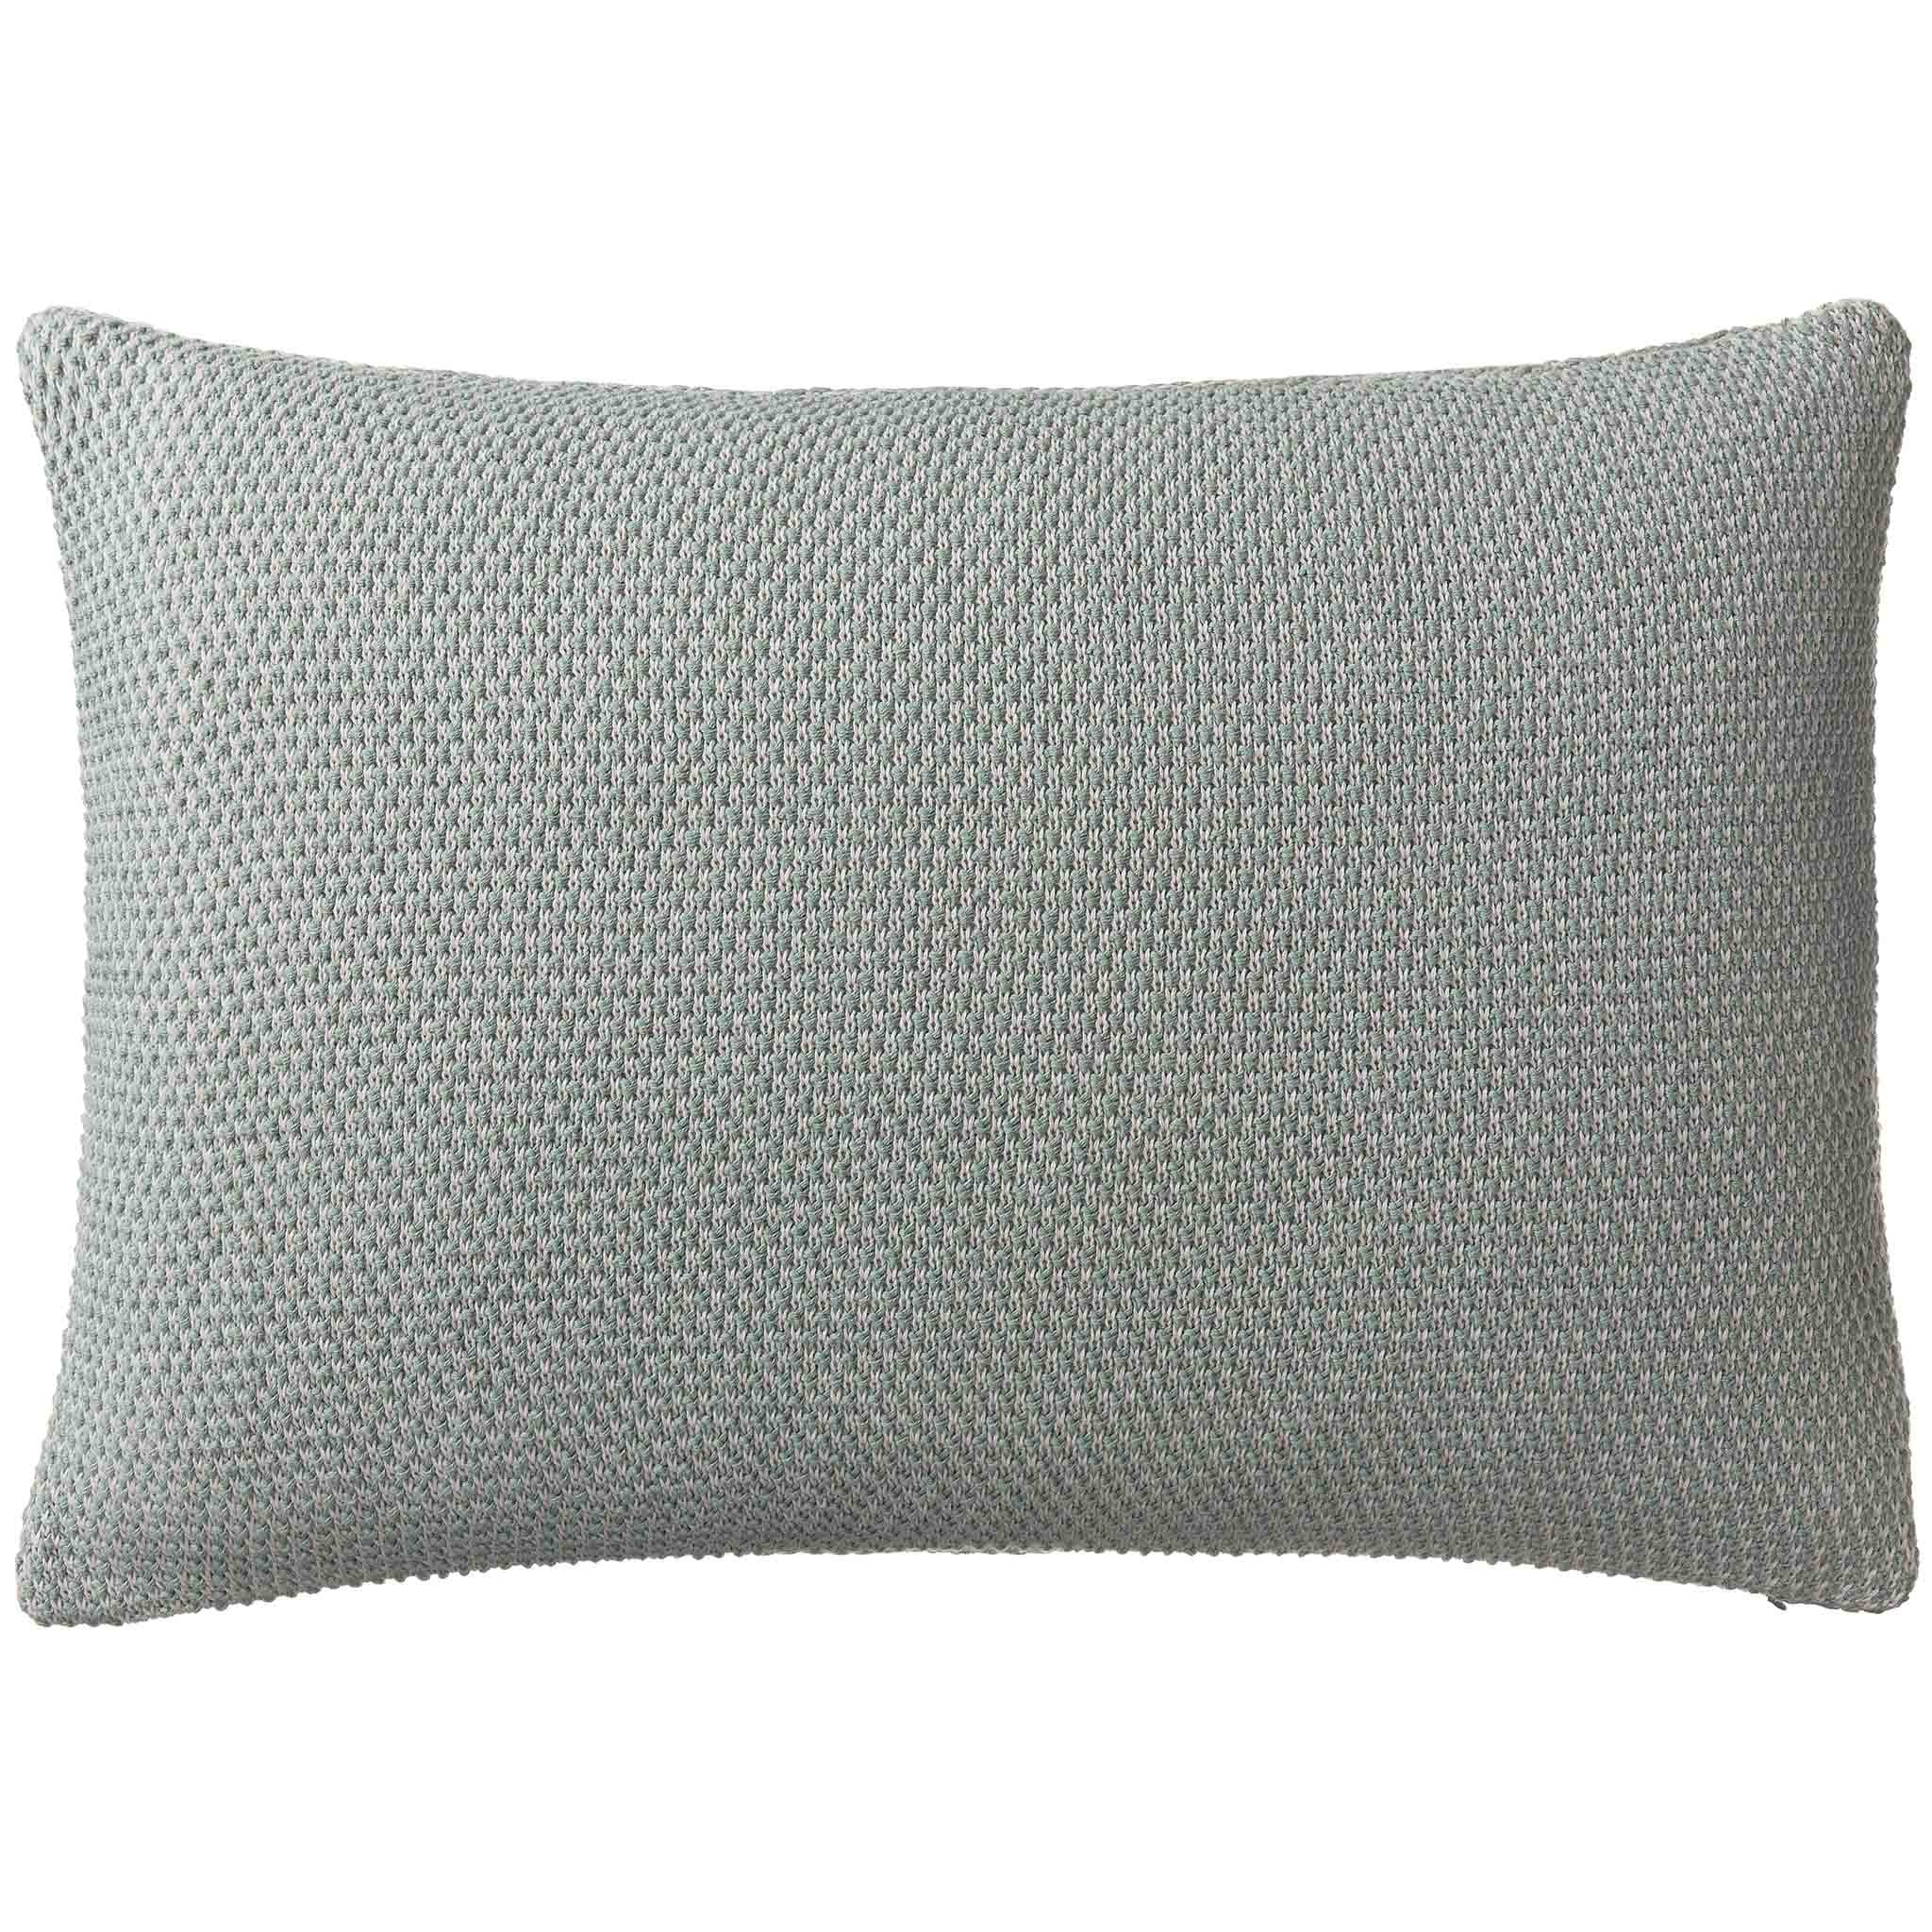 Alvor Cushion Cover [Green grey/Silver grey]